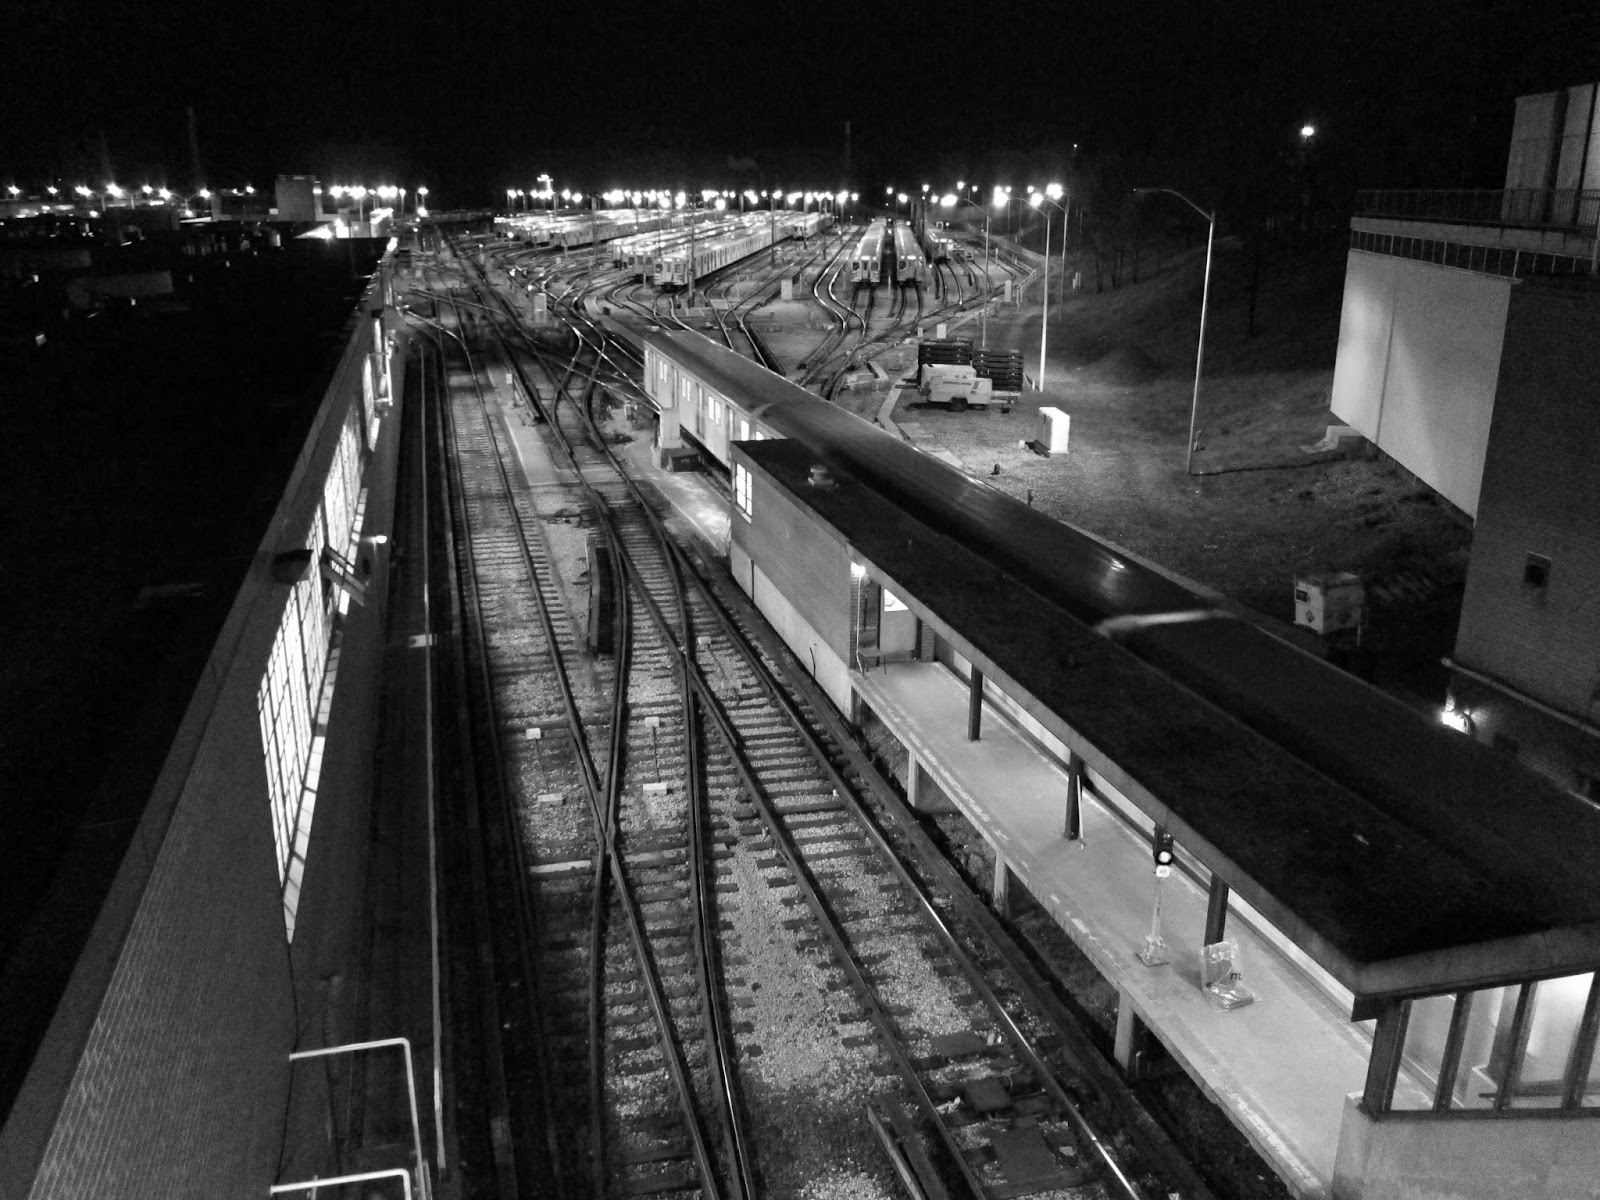 Greenwood Yard at night